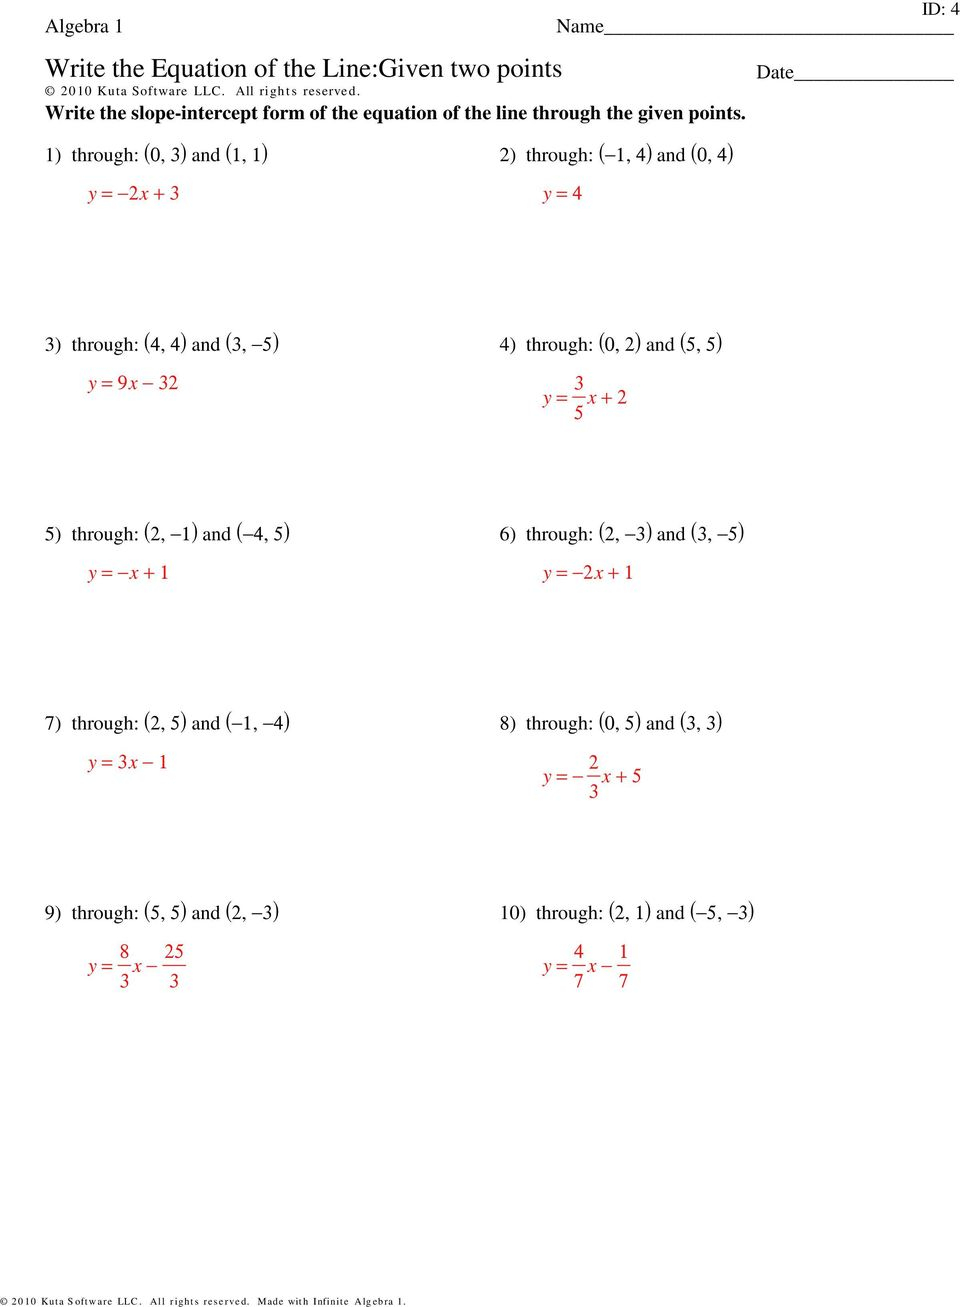 Writing Equations Given Two Points Worksheet Kuta Answers